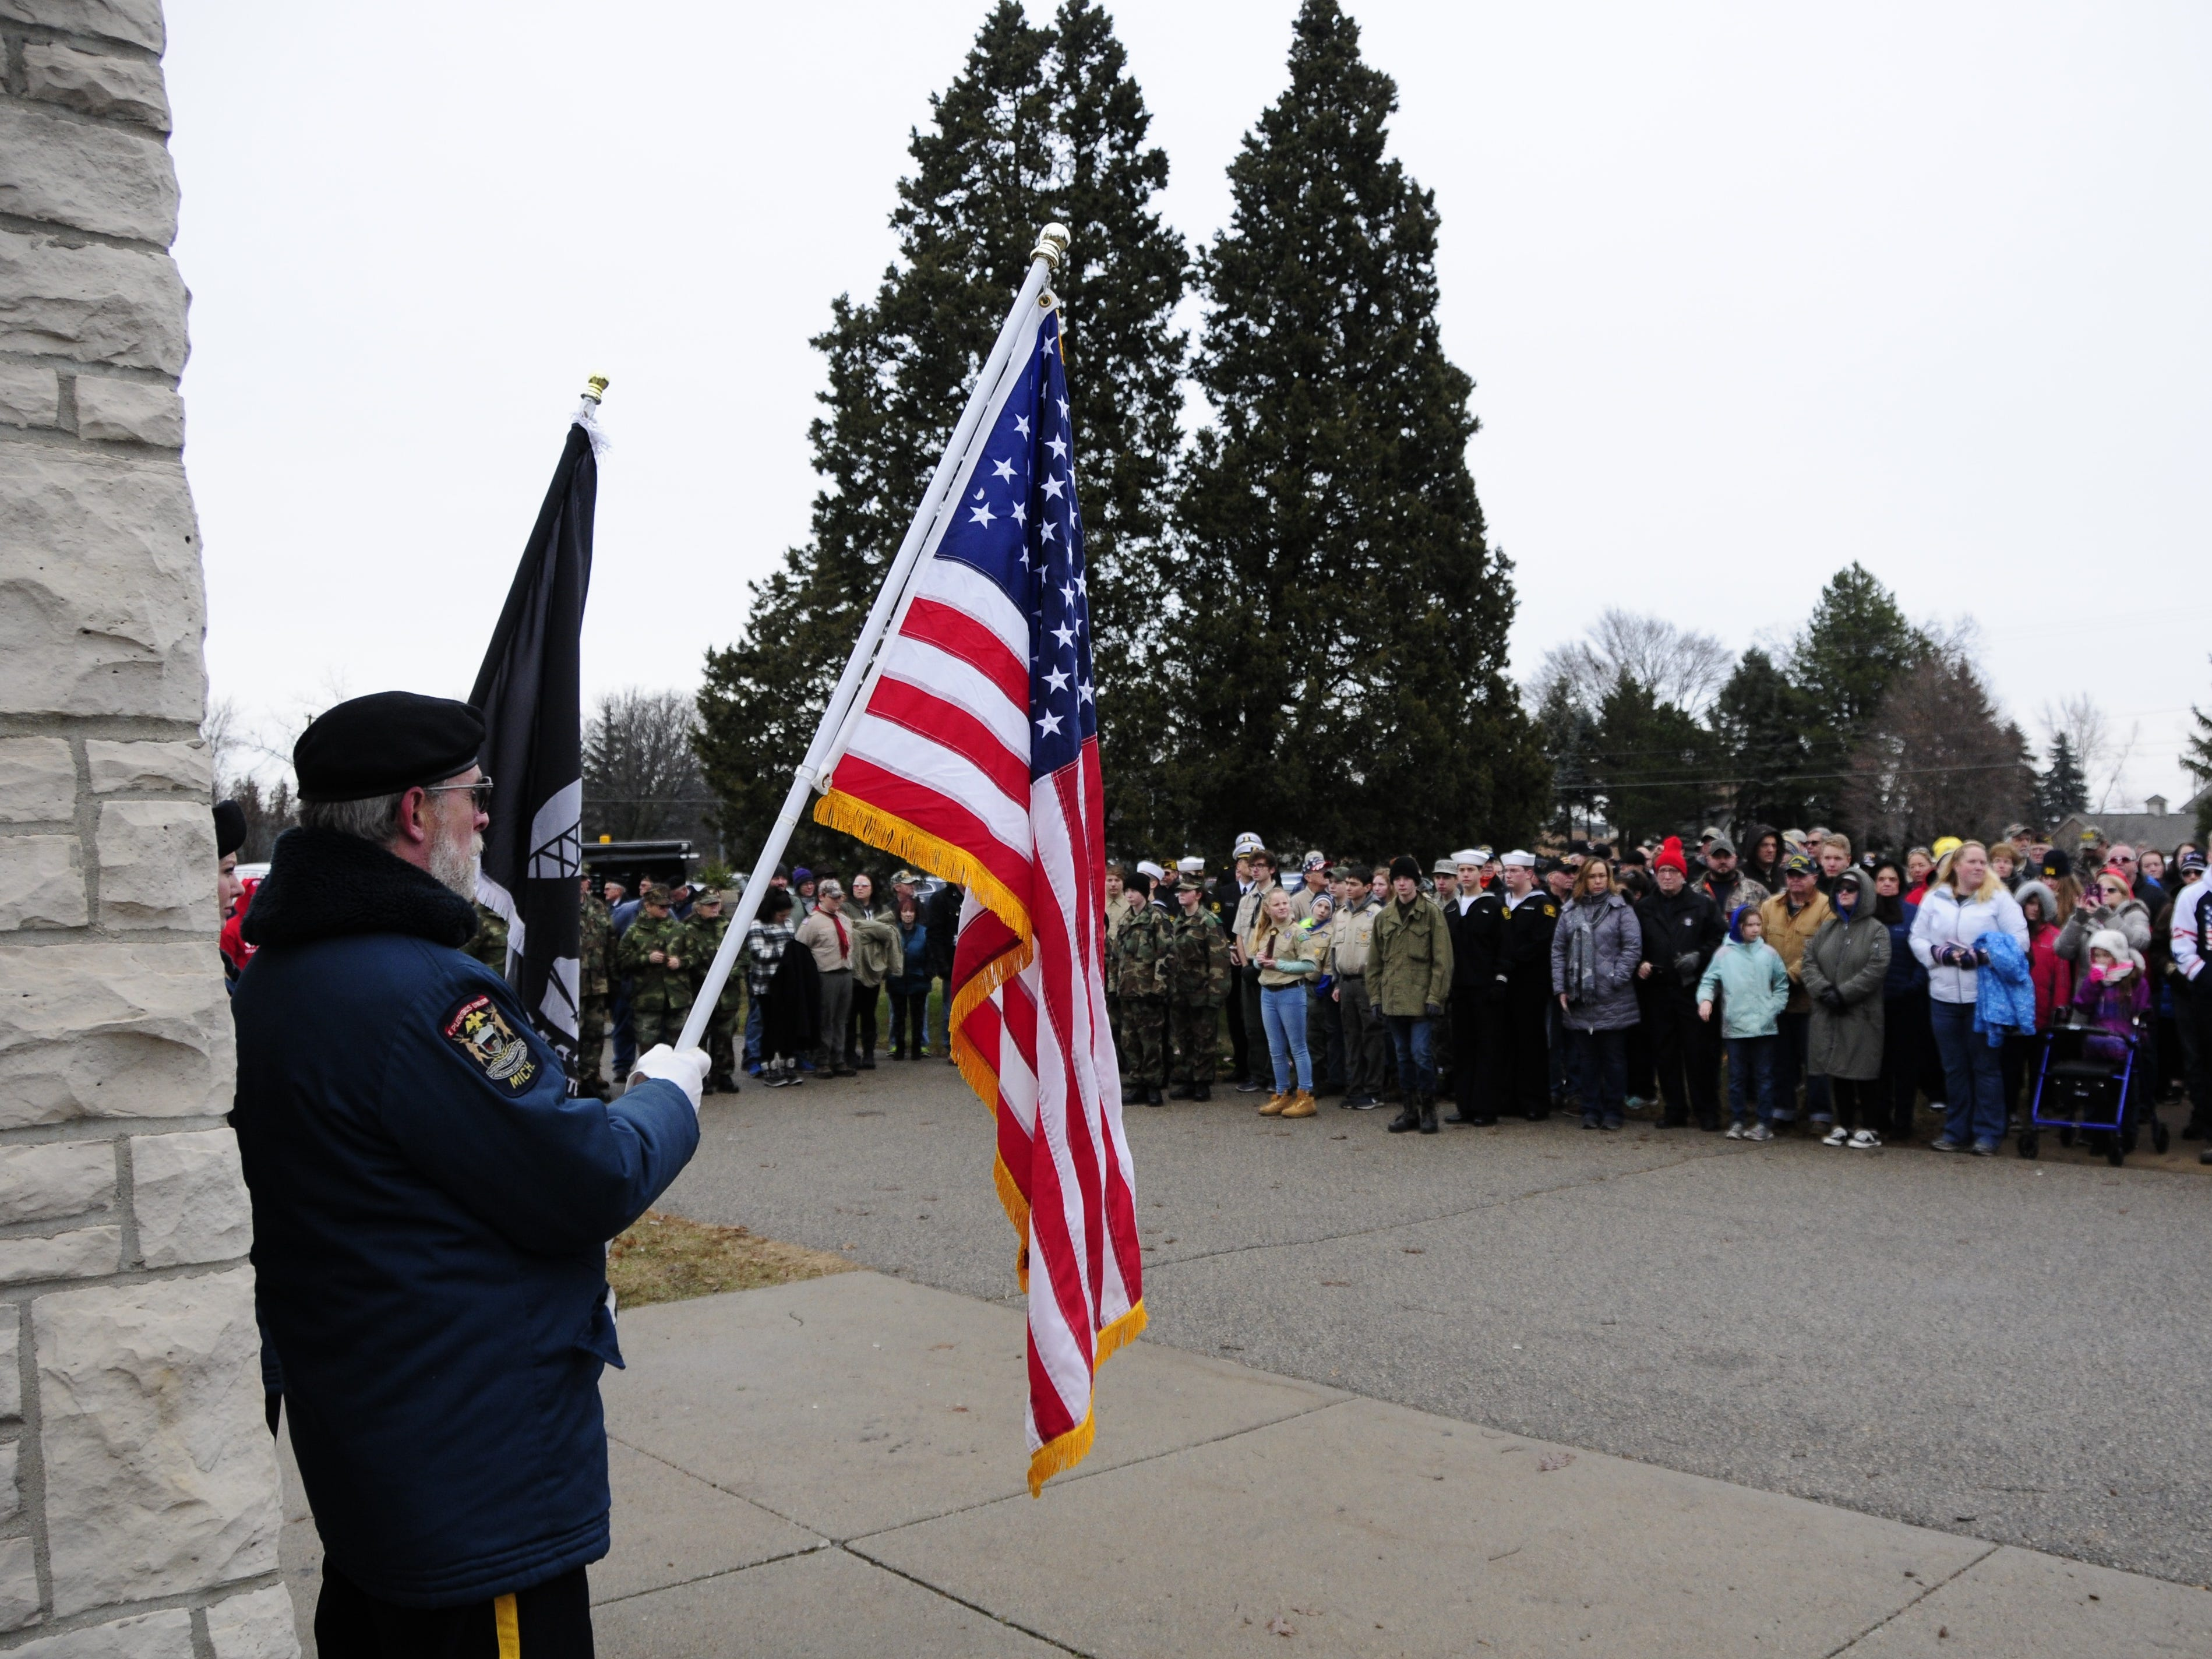 Al Hyde and Heather Sheldon hold an American flag and a POW/MIA flag during the Wreaths Across America event on Saturday, Dec. 15, 2018 at the St. Clair County Allied Veterans Cemetery.